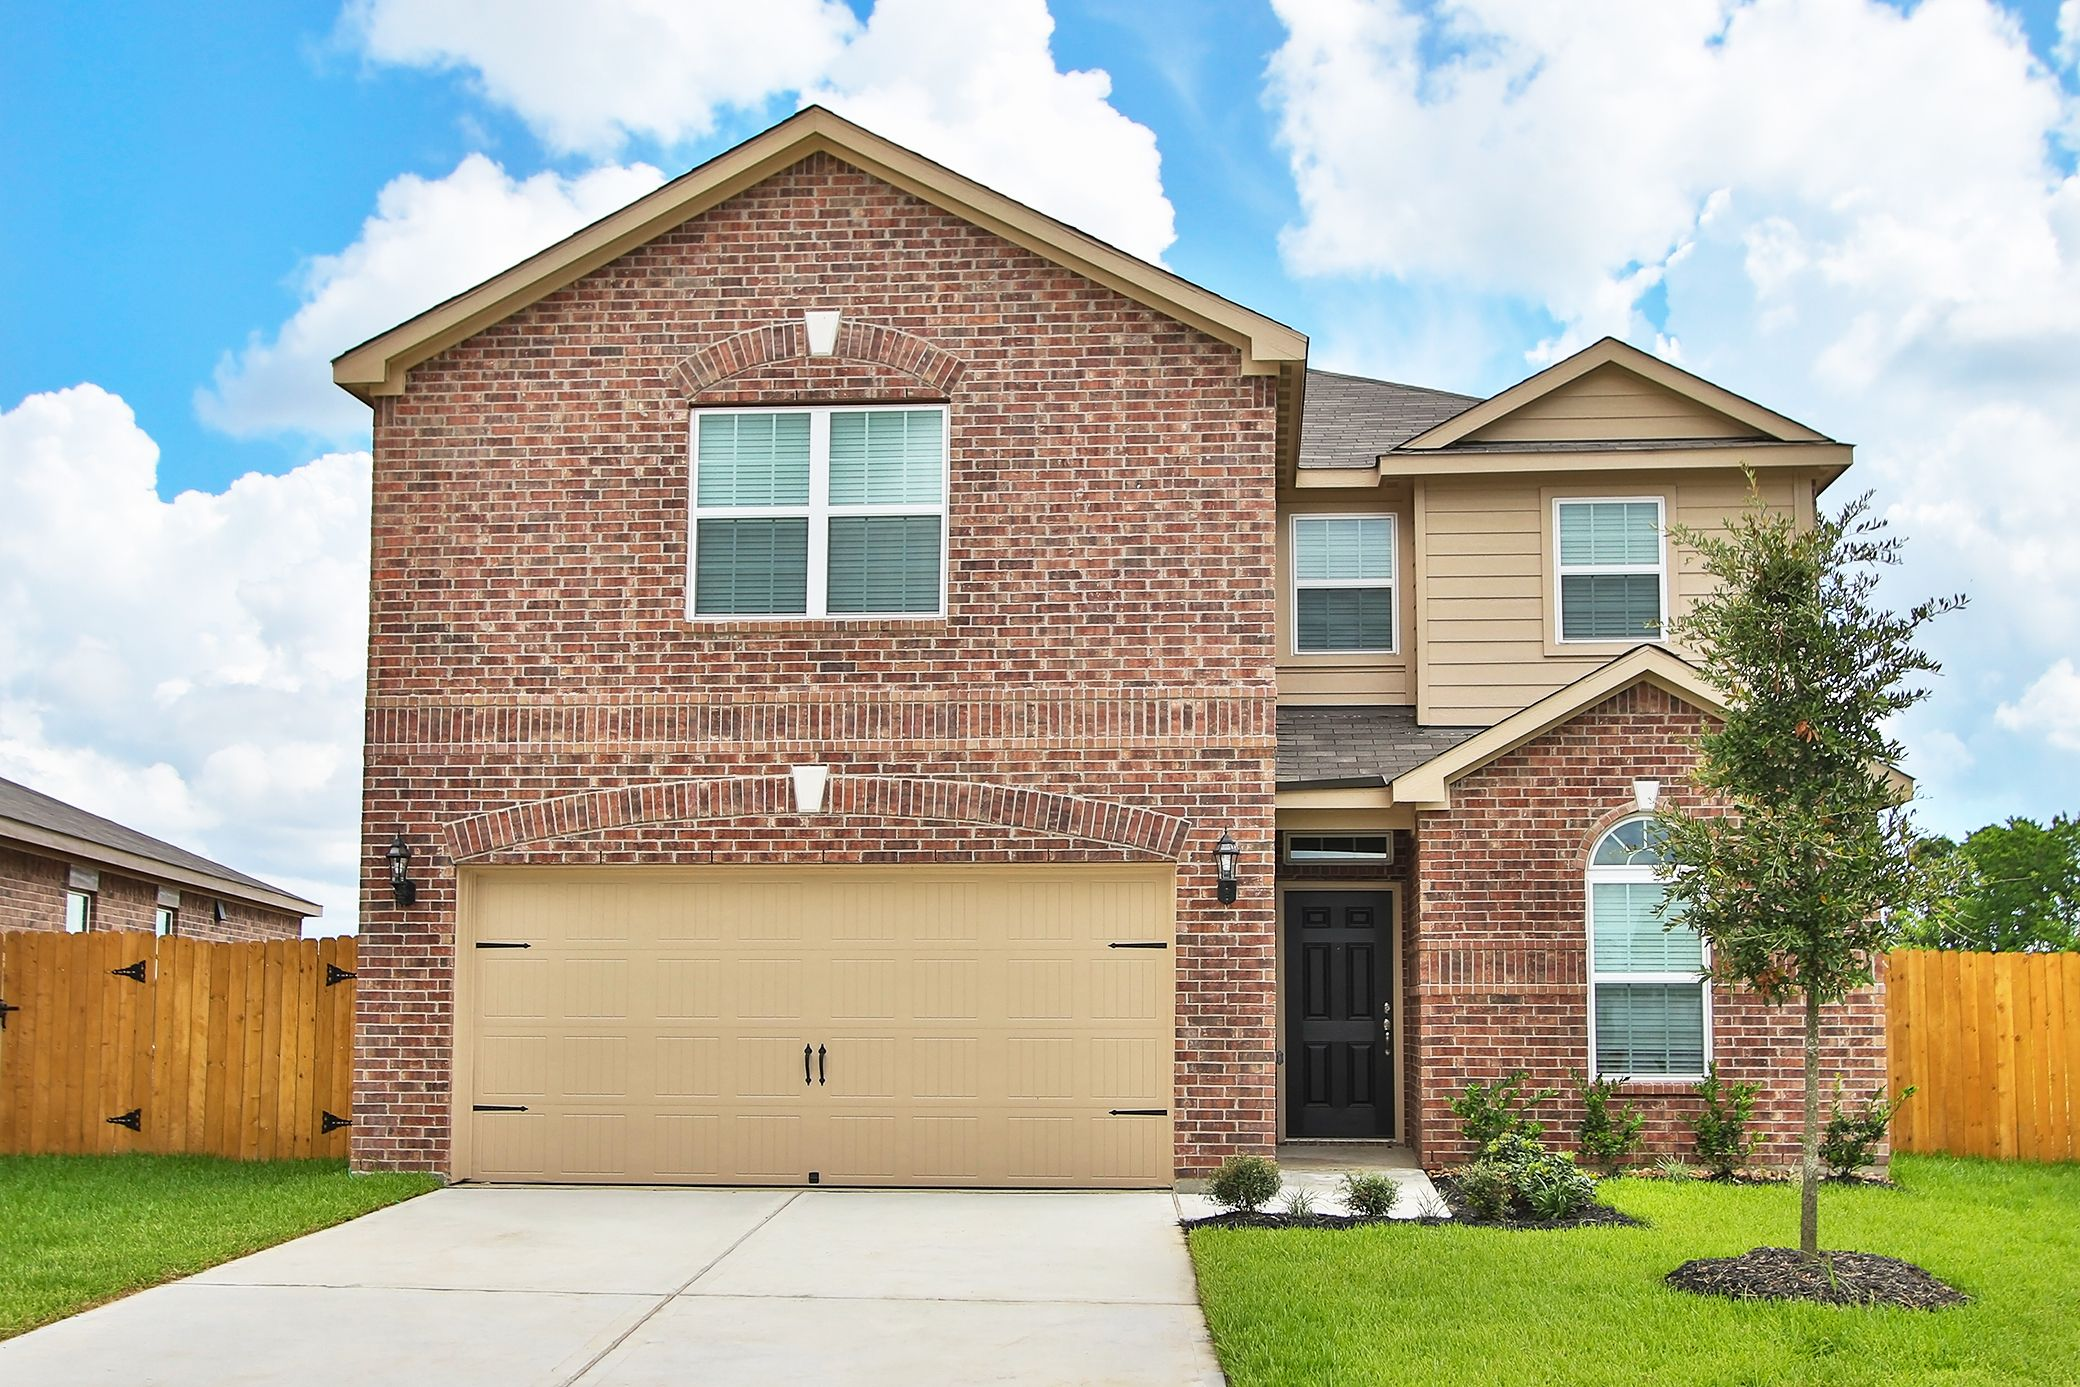 New Homes in Texas City, TX | 101 Communities | NewHomeSource